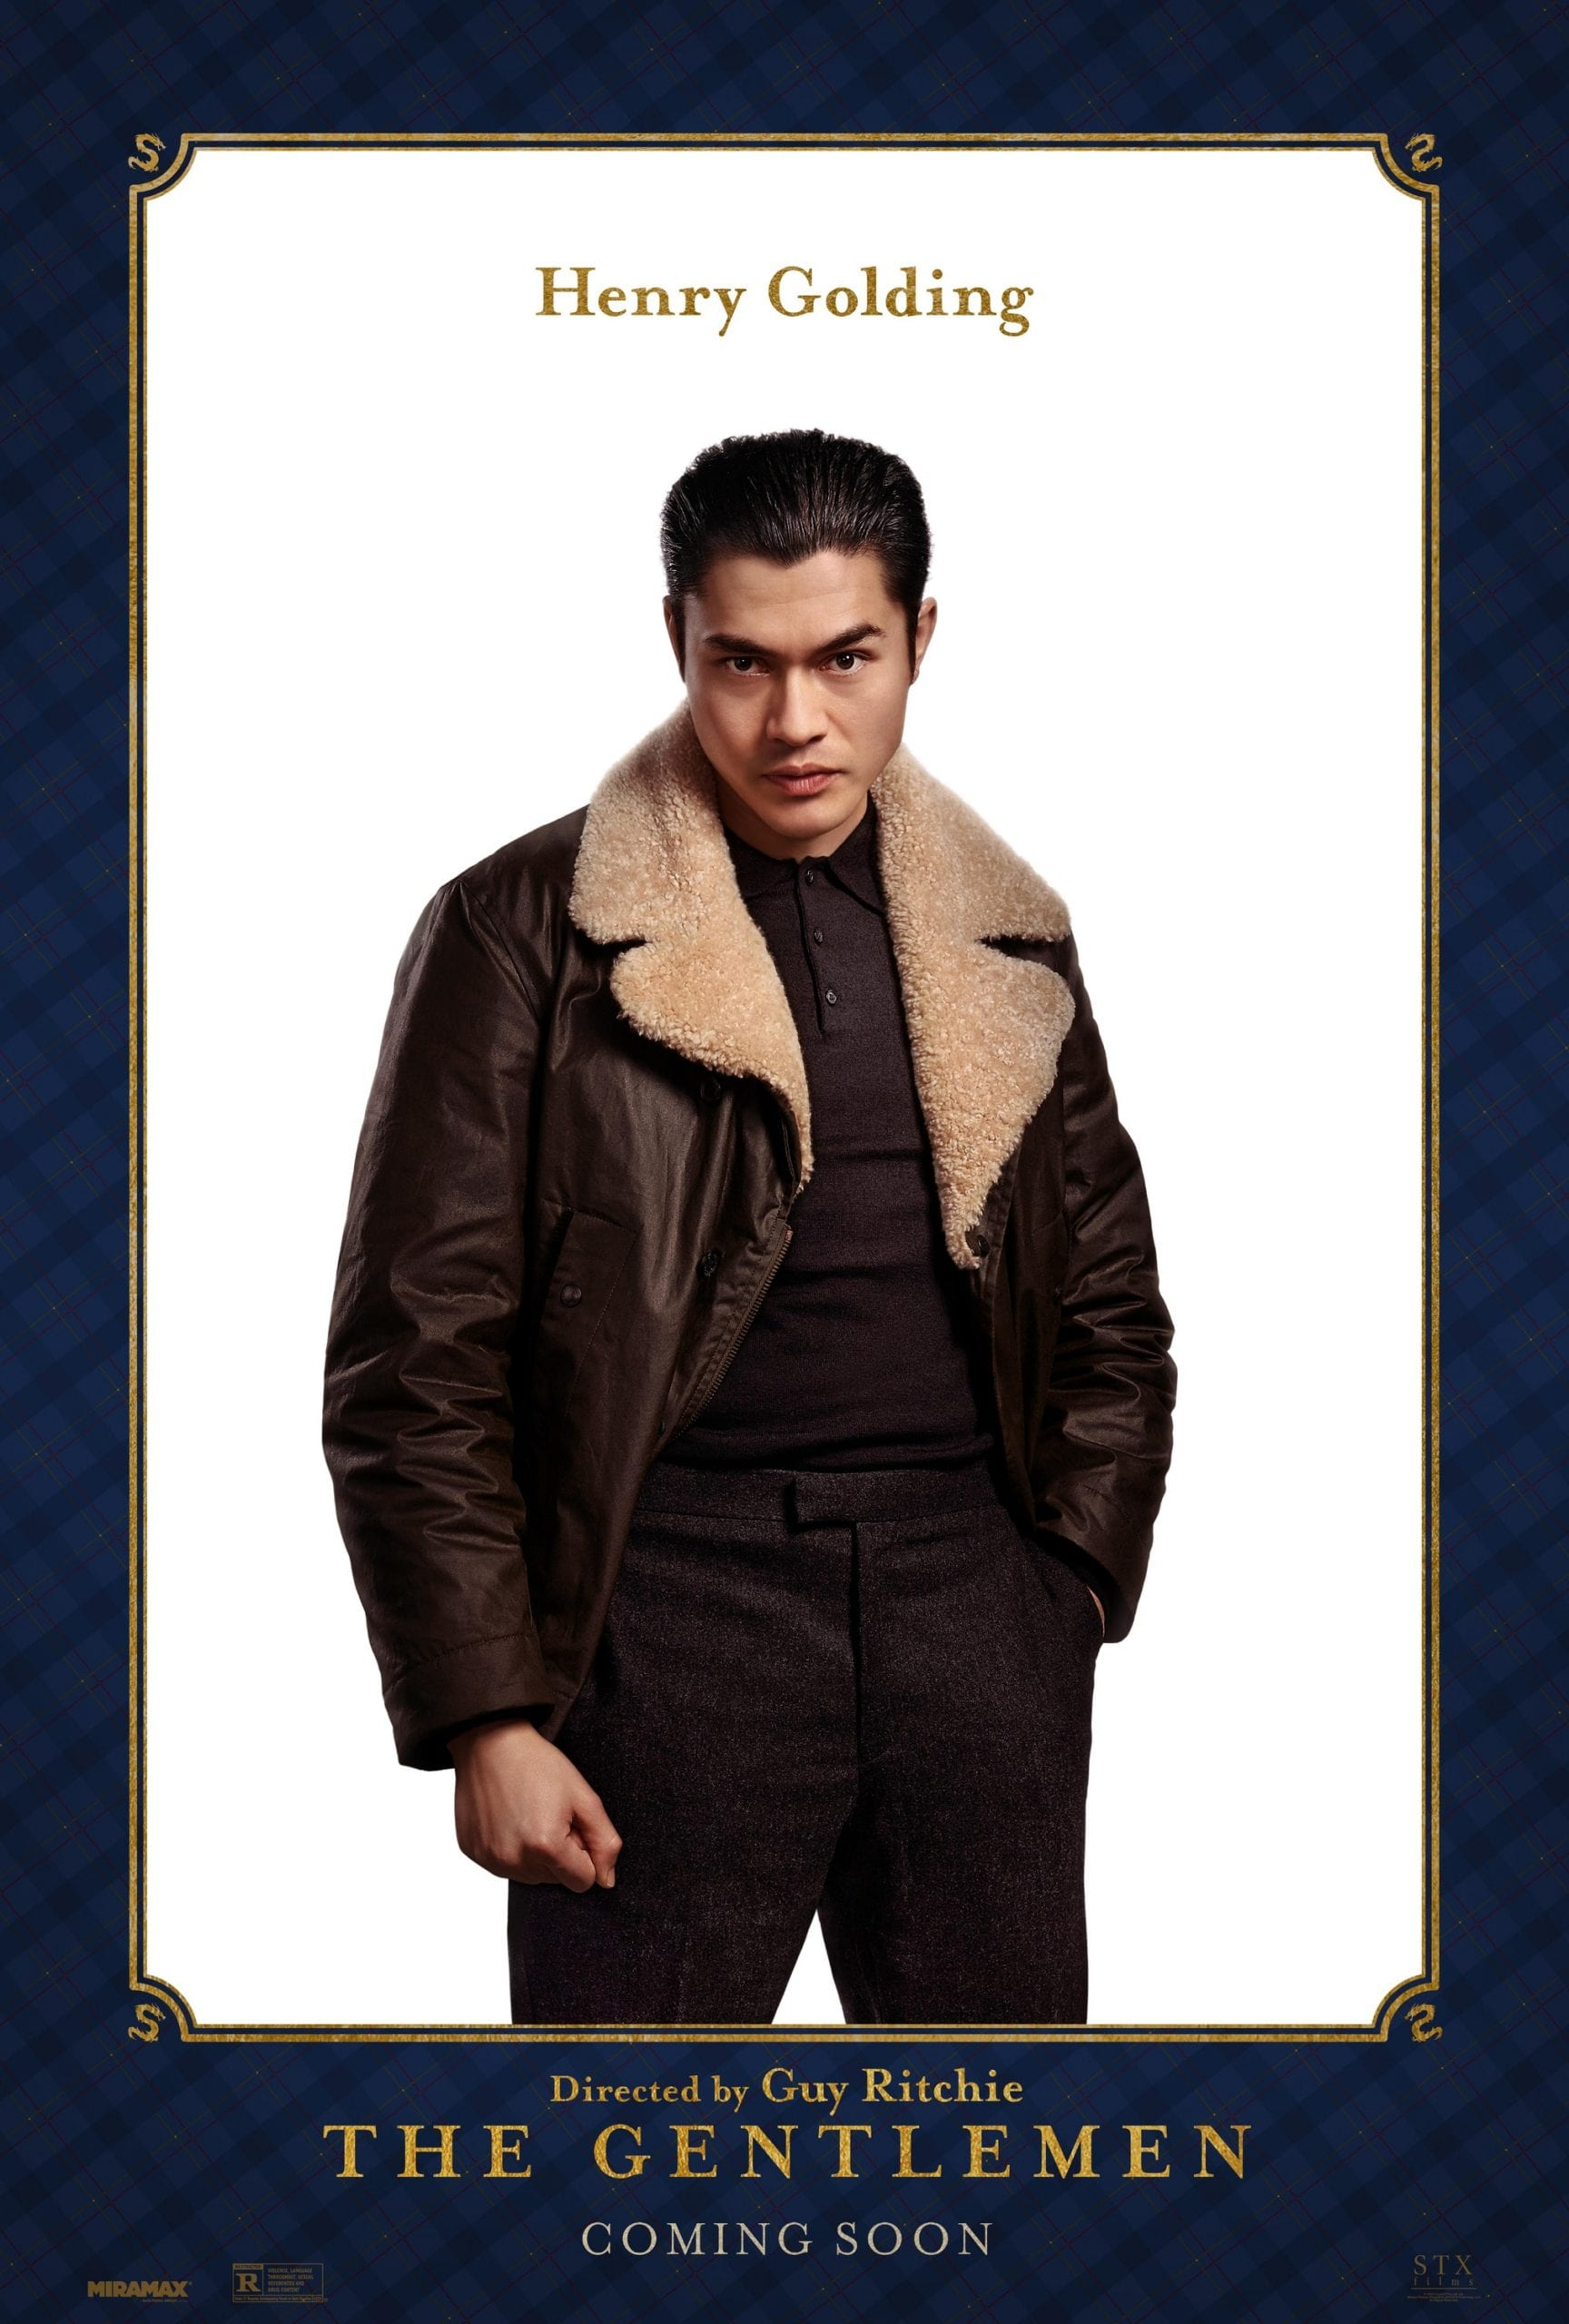 Henry Golding as Dry Eye The Gentlemen Character Posters